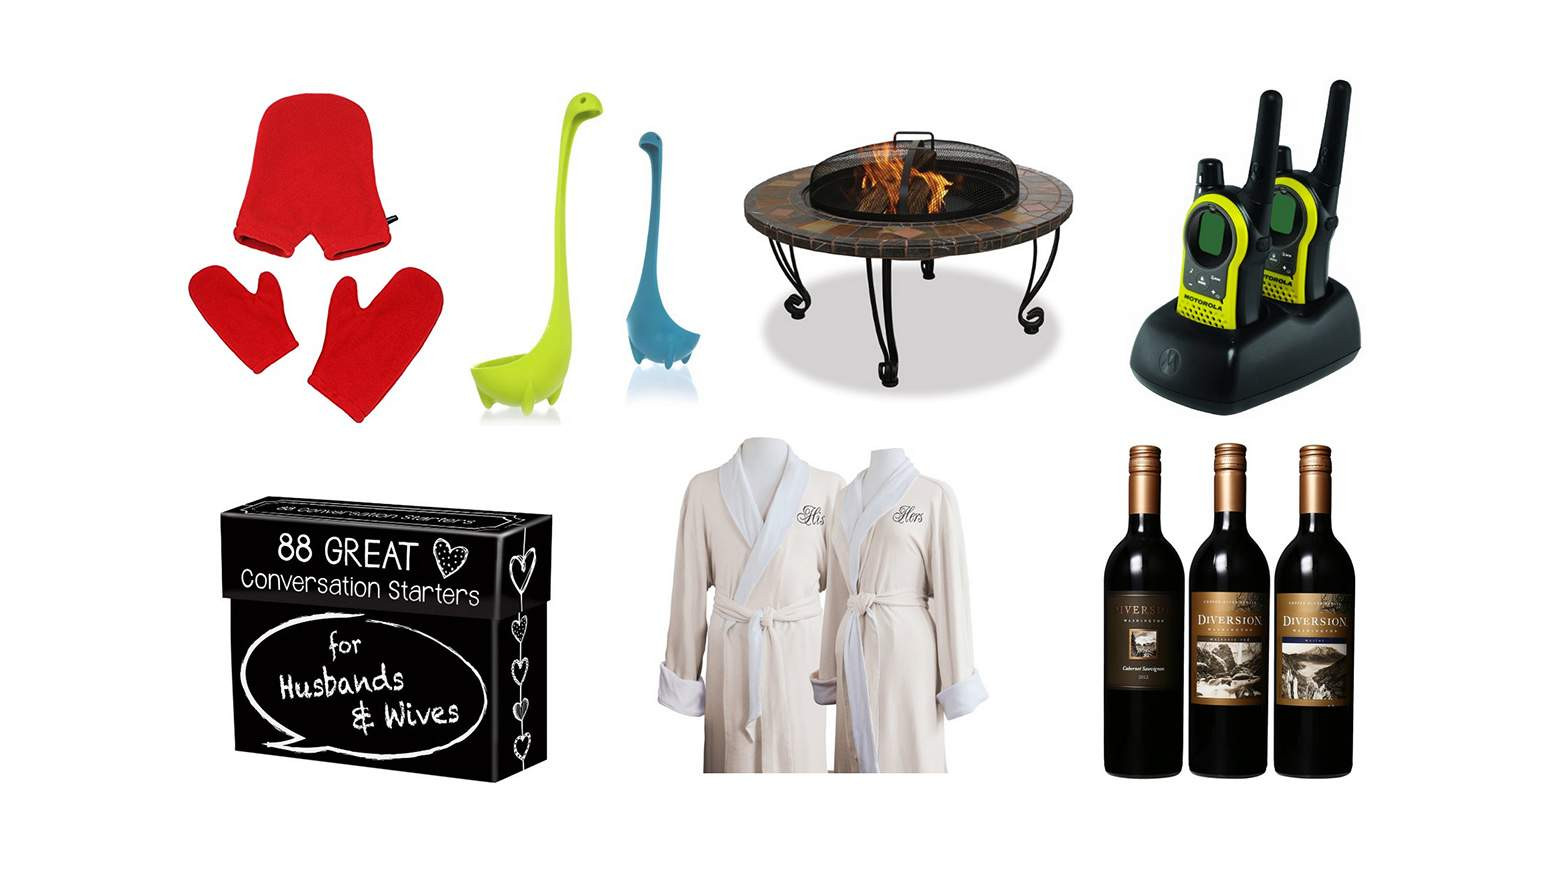 Best ideas about Gift Ideas For Couples Christmas . Save or Pin Christmas Gifts for Couples Top 10 Best Ideas Now.